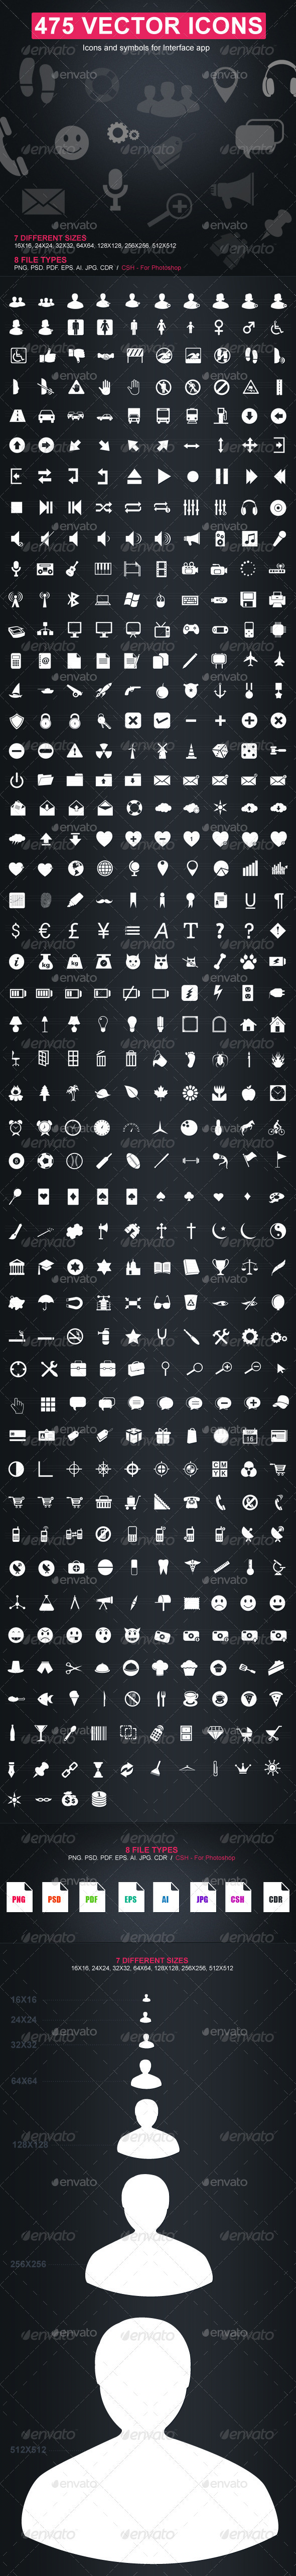 475 Vector Icons